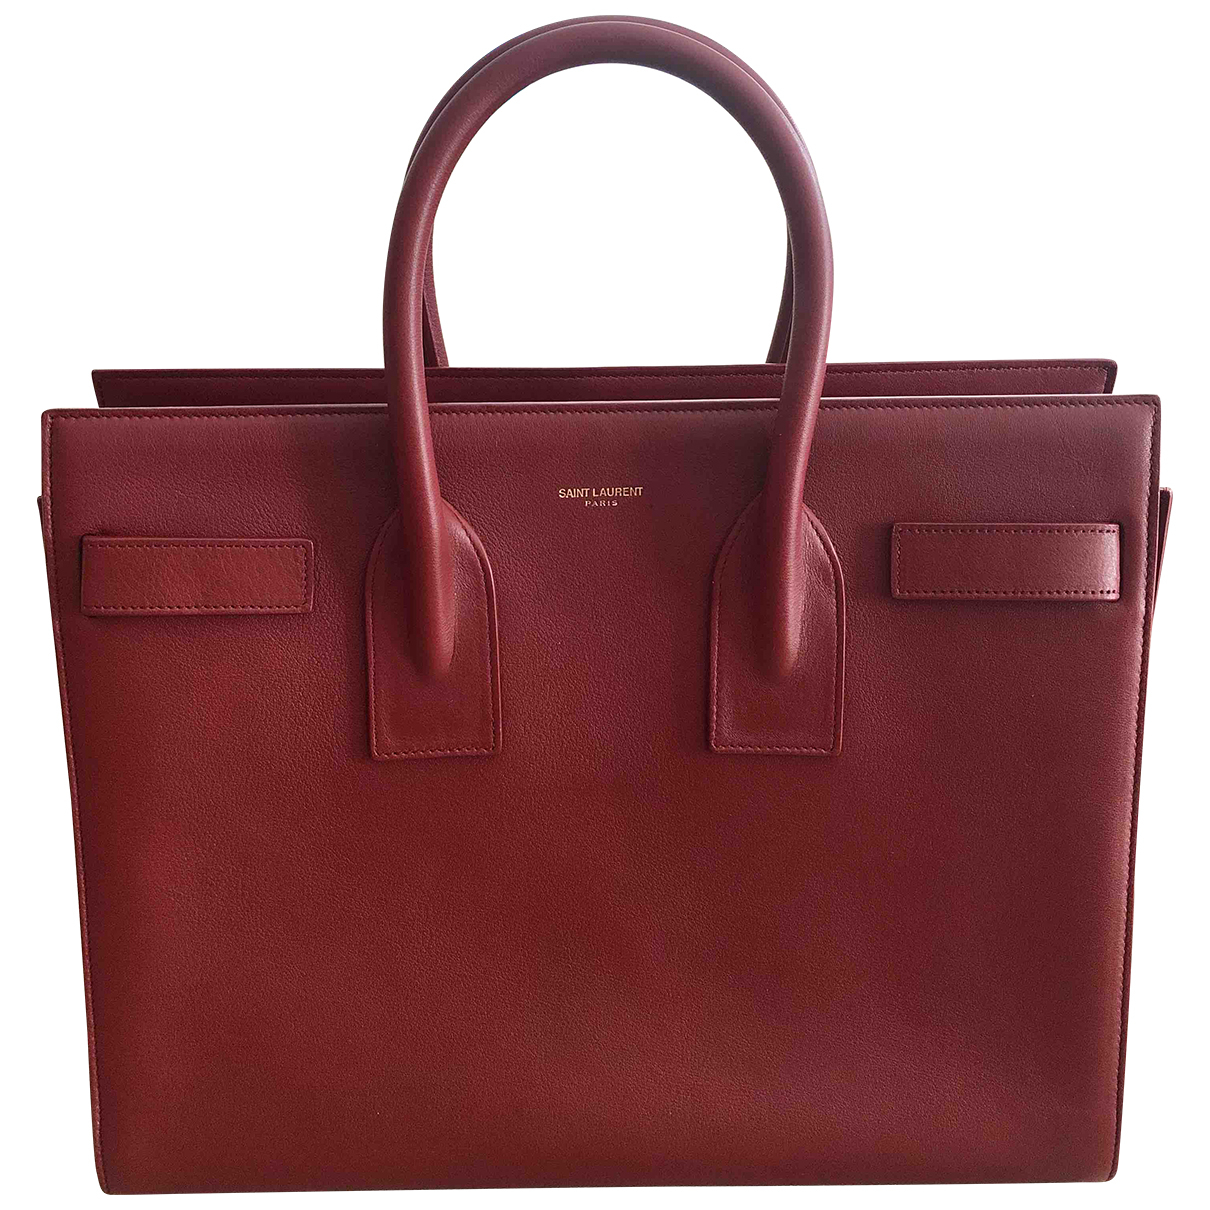 Saint Laurent Sac de Jour Red Leather handbag for Women \N